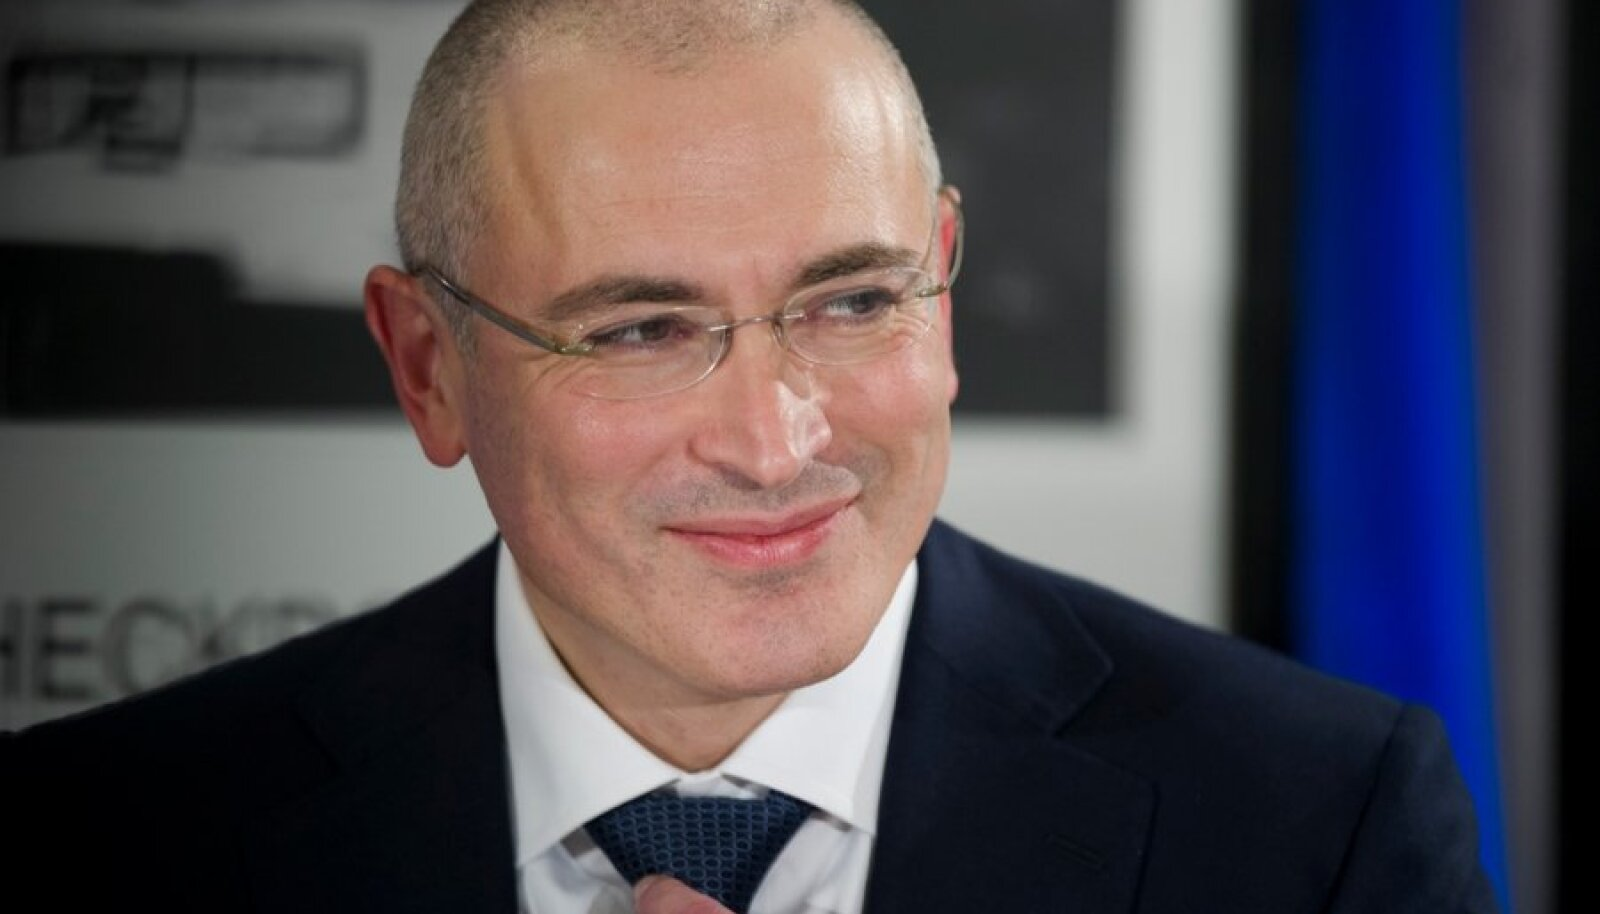 Freed Russian fomer oil tycoon Khodorkovsky reacts during his news conference in the Museum Haus am Checkpoint Charlie in Berlin